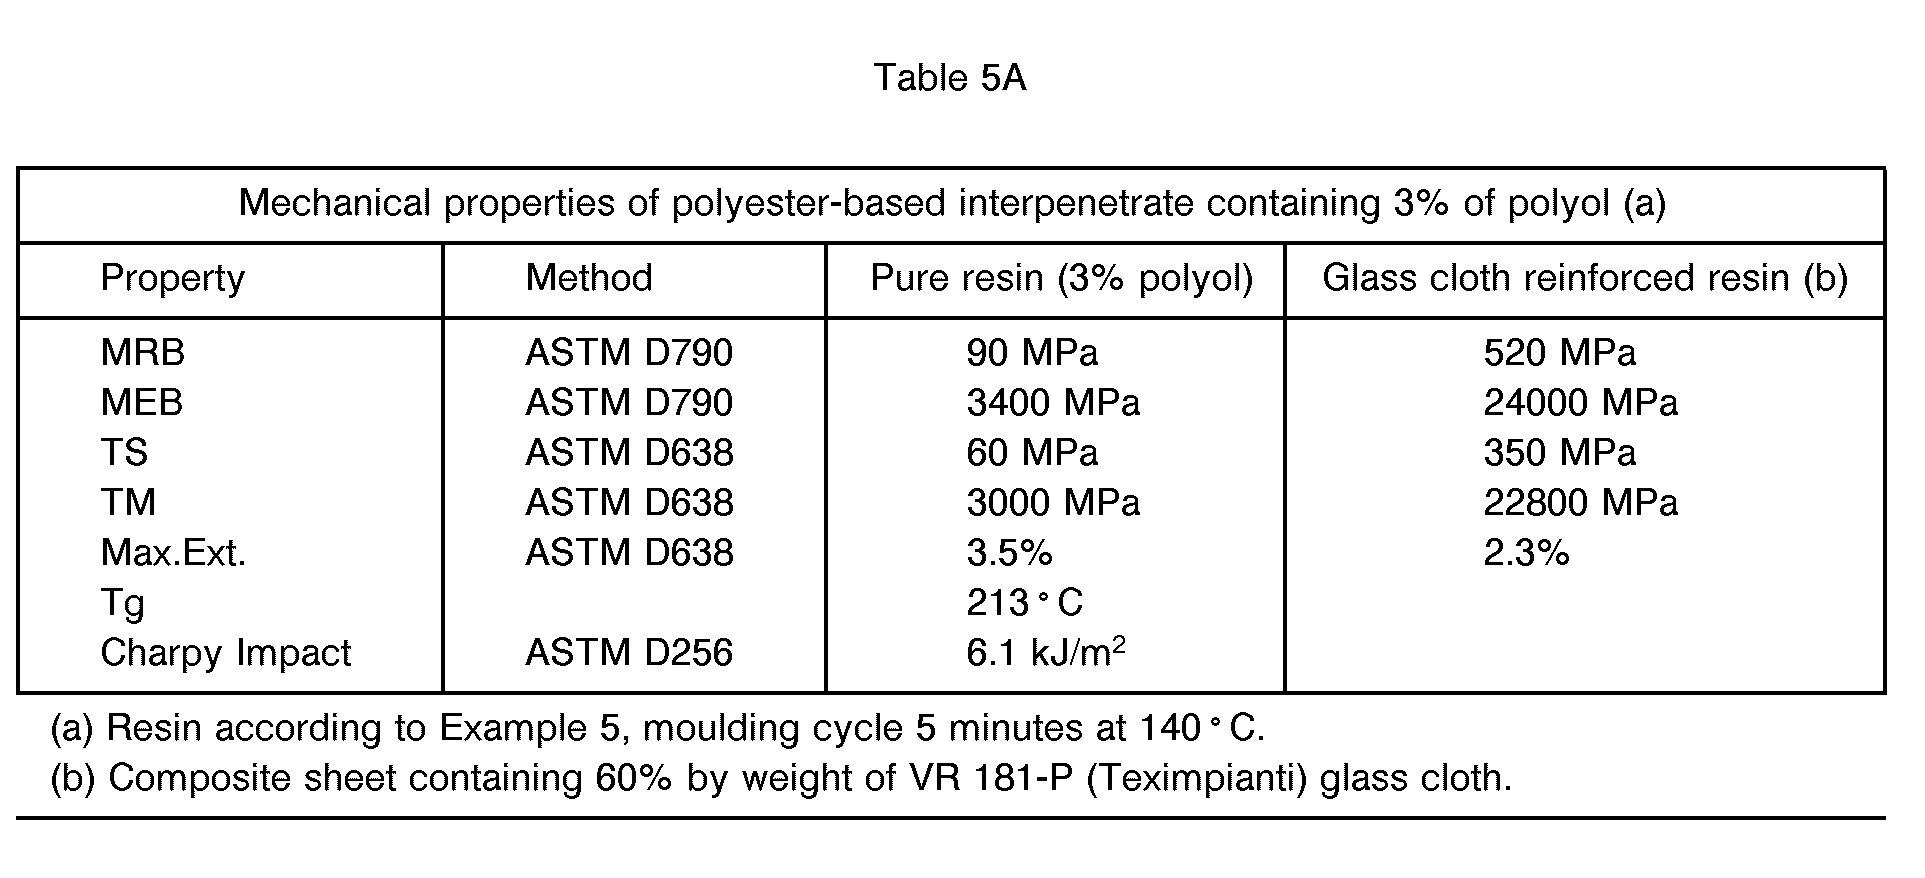 EP0570735A2 - Crosslinkable polyester/isocyanate compositions